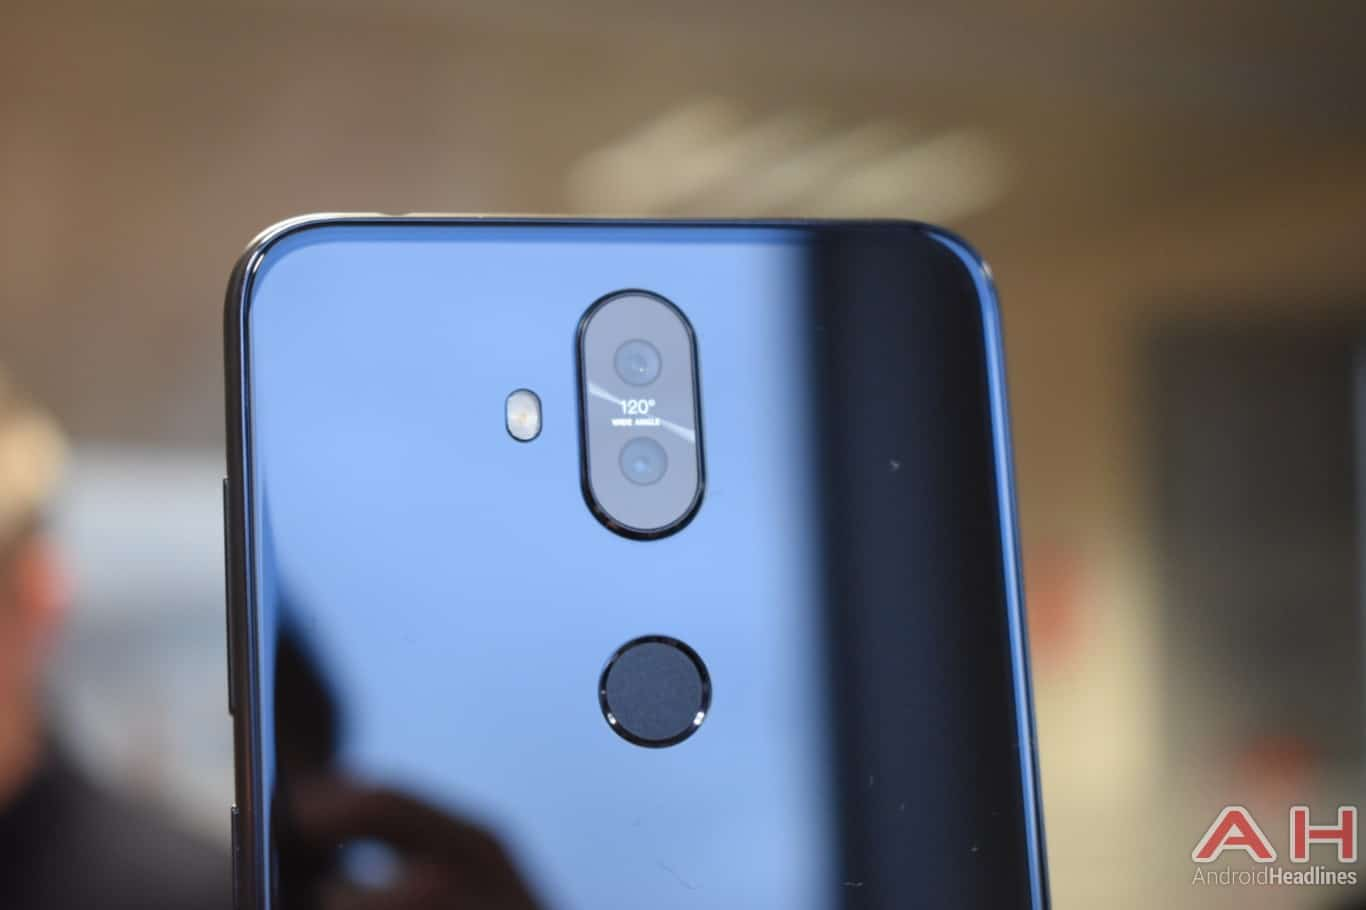 AH ASUS ZenFone 5Q hands on MWC 2018 21